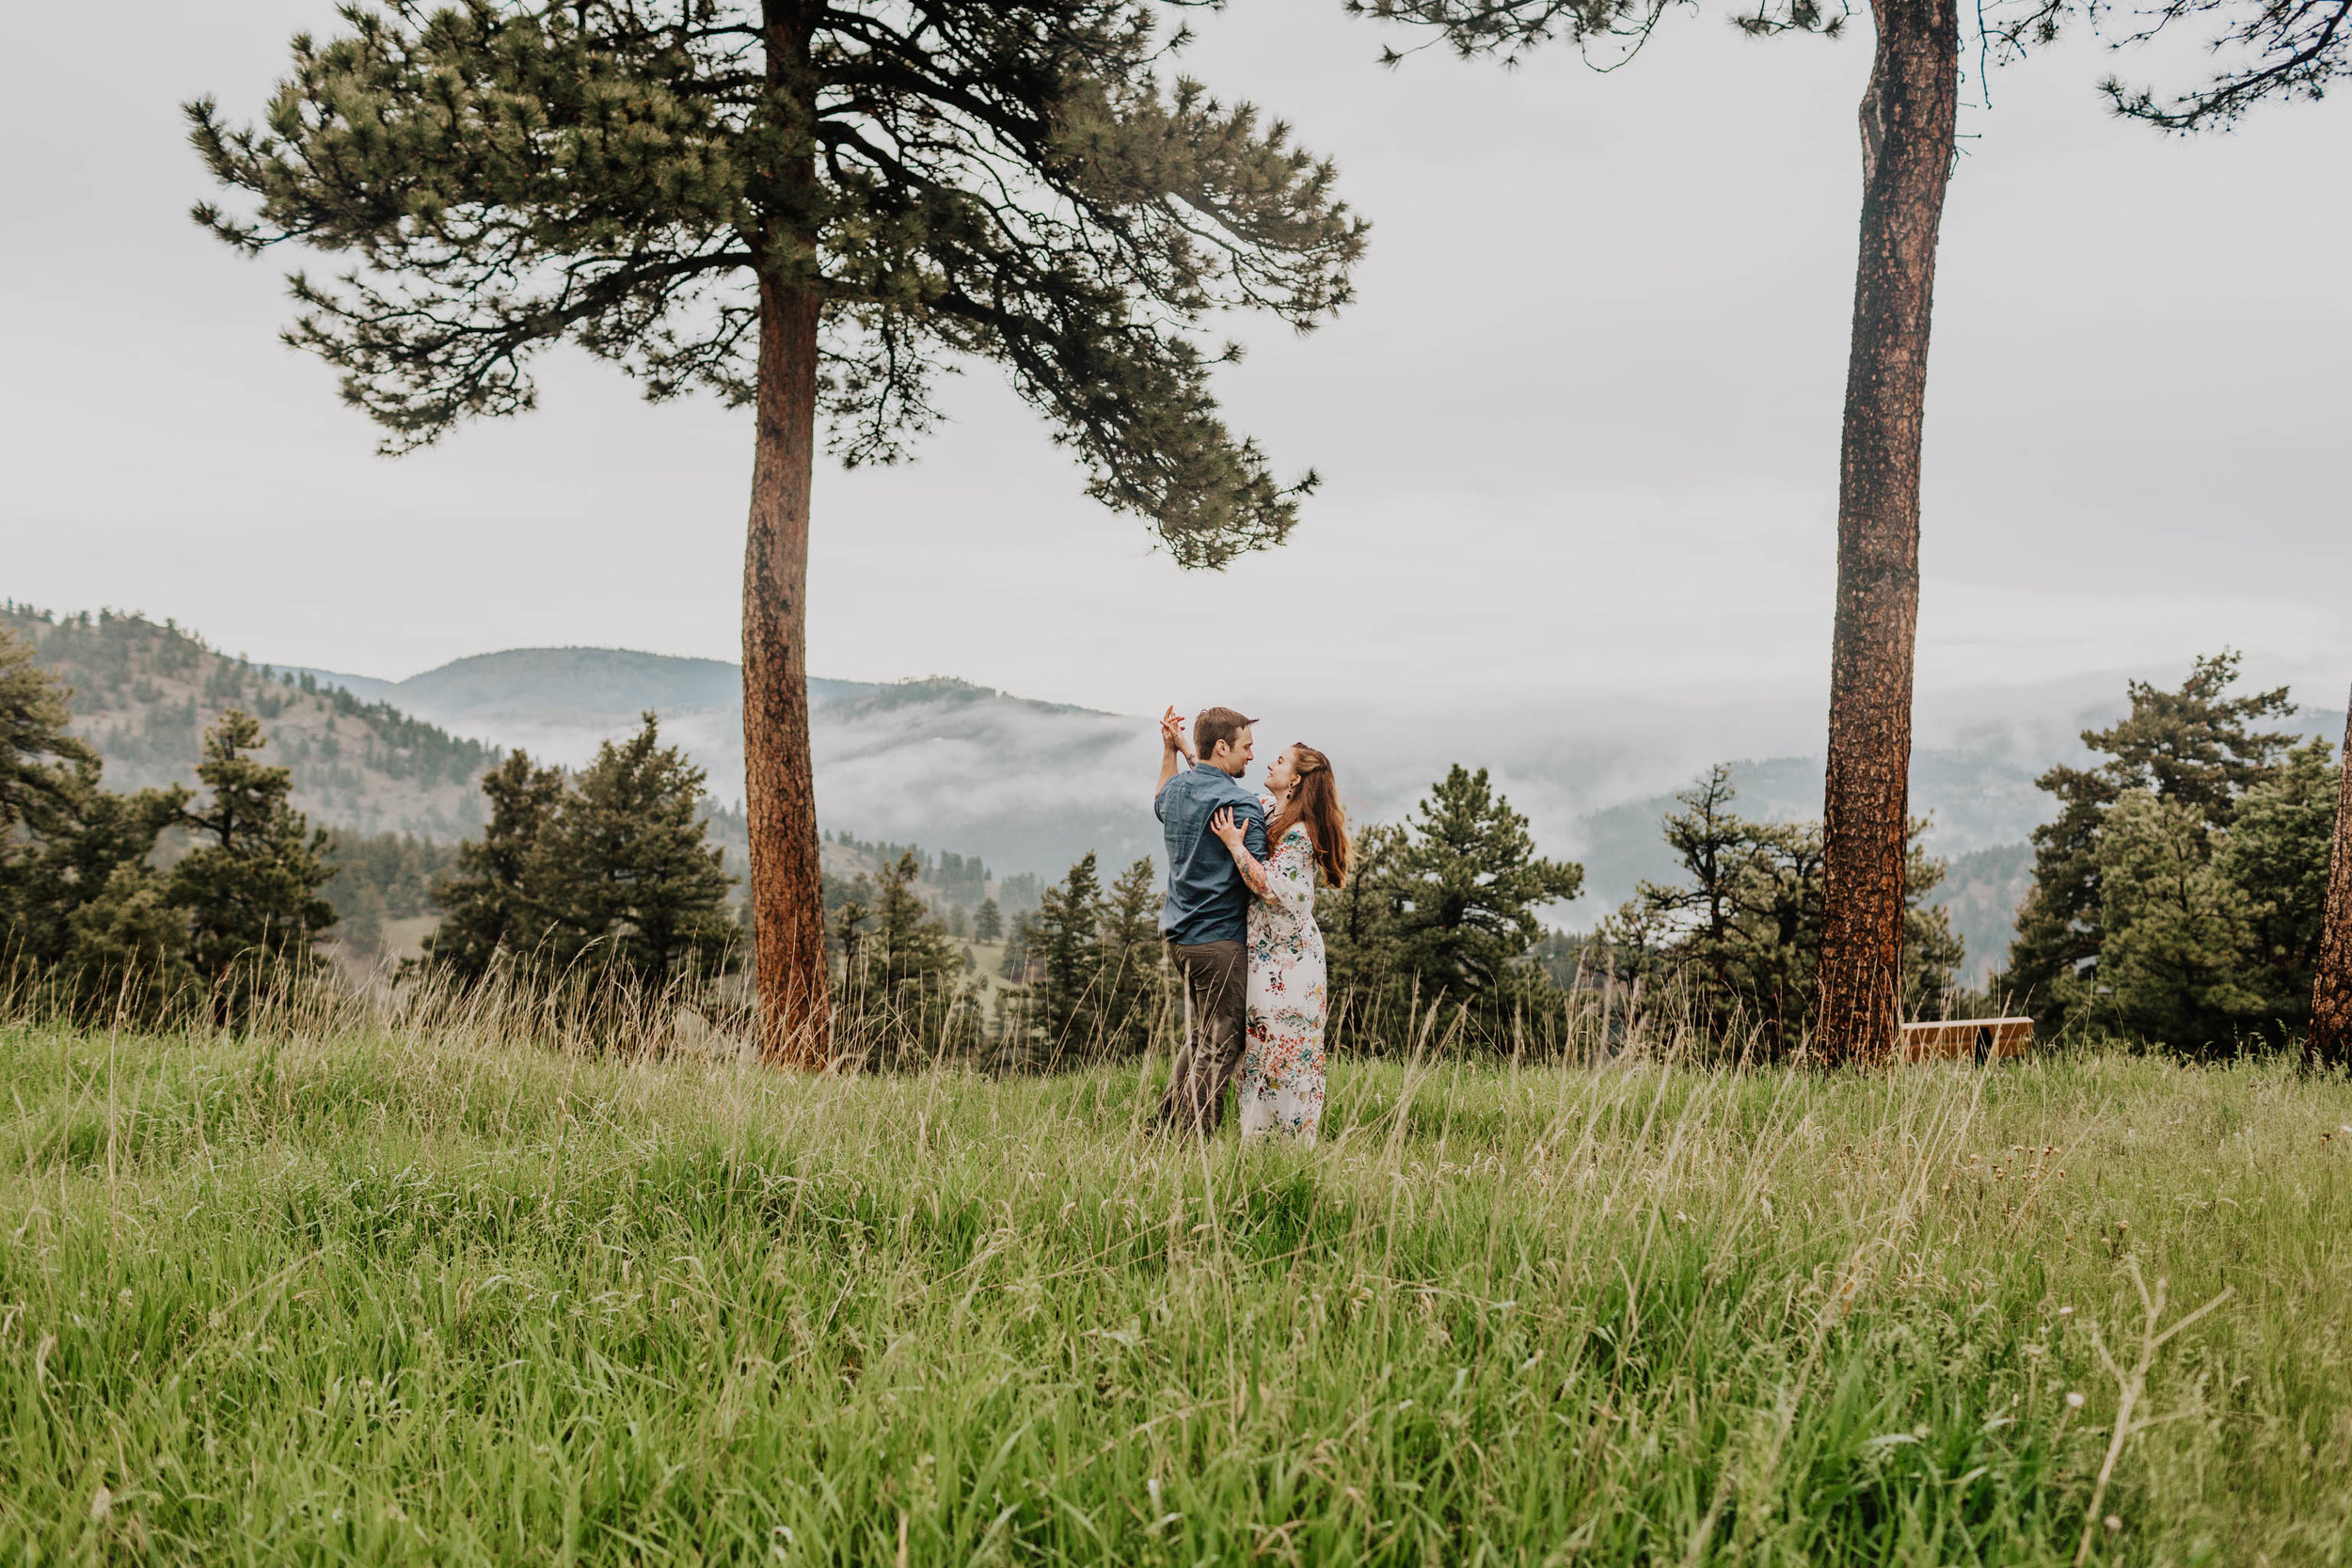 Sheena_Shahangian_Photography_Engagement_Photo_Shoot_Shelby_and_Andrew_Boulder_Colorado-120.jpg